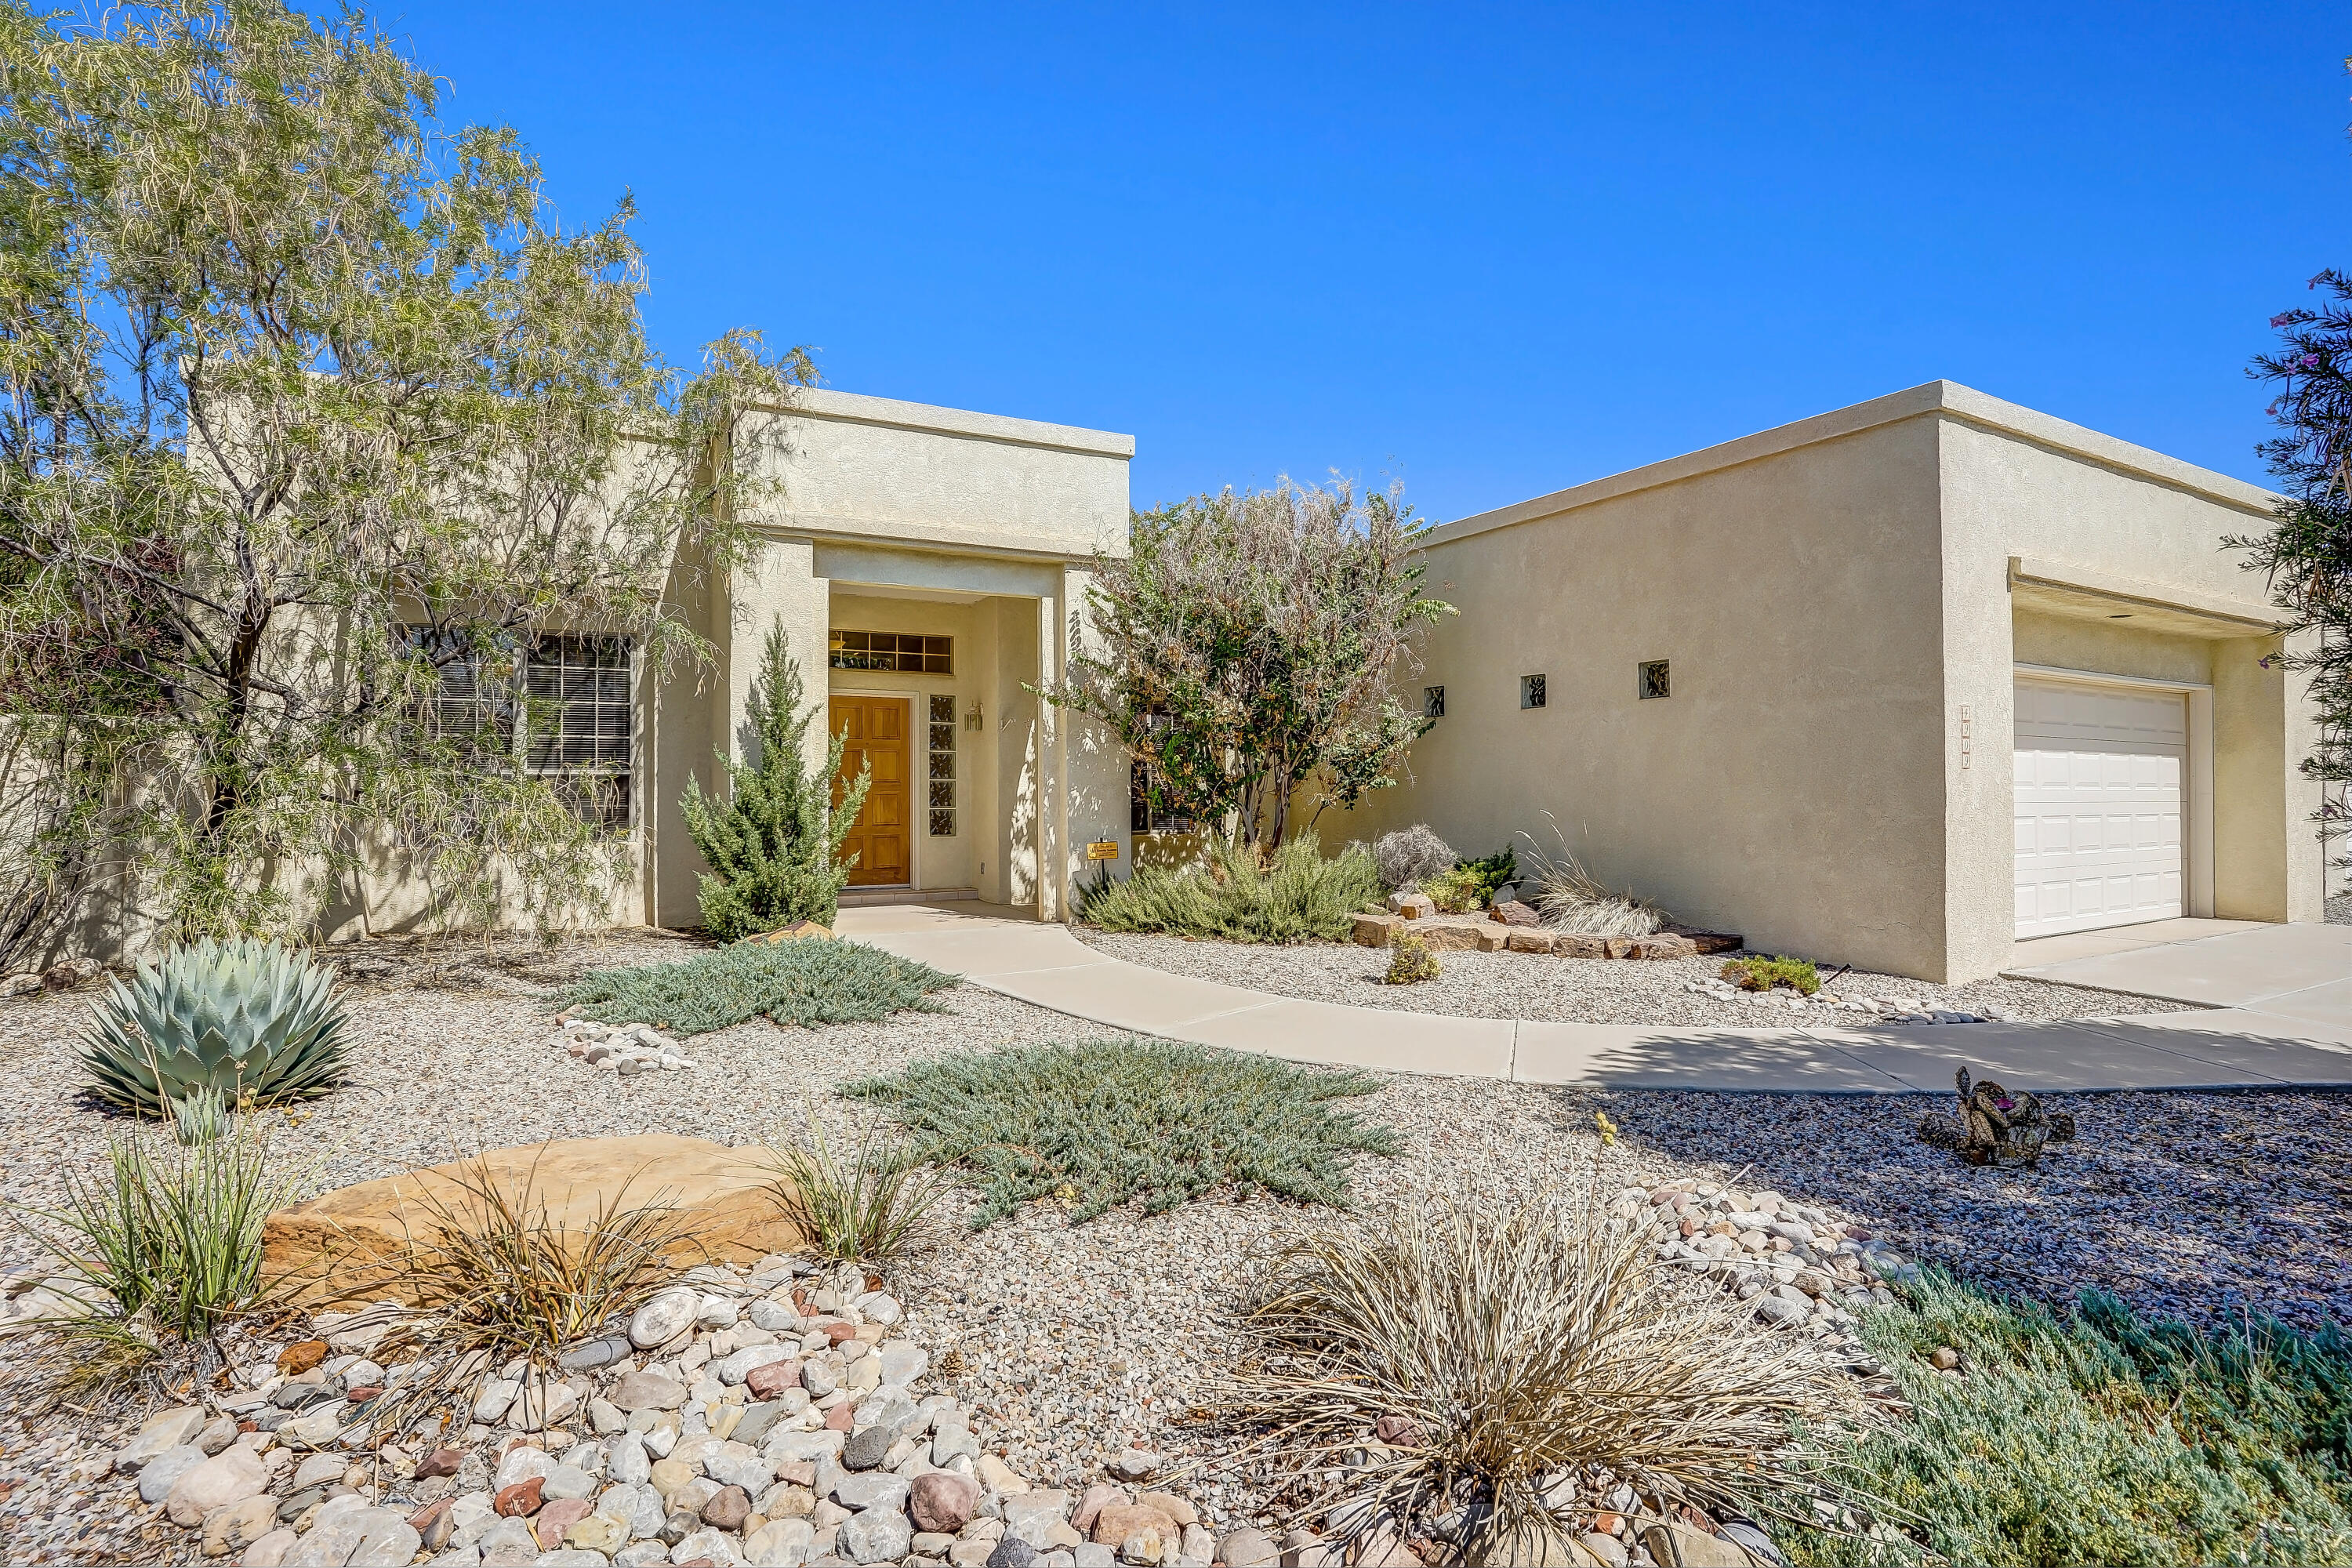 This move-in ready, three bedroom / two bath home, sitting on a nice corner lot offers comfortable living space in a convenient location. Formerly the model home for Ashot builders; the home has two living areas, a beautiful kiva style fireplace, and a wonderful backyard - perfect for entertaining and relaxing under the covered patio or enjoying a swim in the in-ground pool. The modern twist on southwestern style combines wonderfully with the ample windows to create a naturally bright, open feeling. Located in the master bathroom are double sinks, elegant large garden tub, separate showers and a roomy walk-in closet. The kitchen boasts plenty of countertop and cabinet space - perfect for the home chef's creations, whether they be formal dinners or refreshments for a pool party.